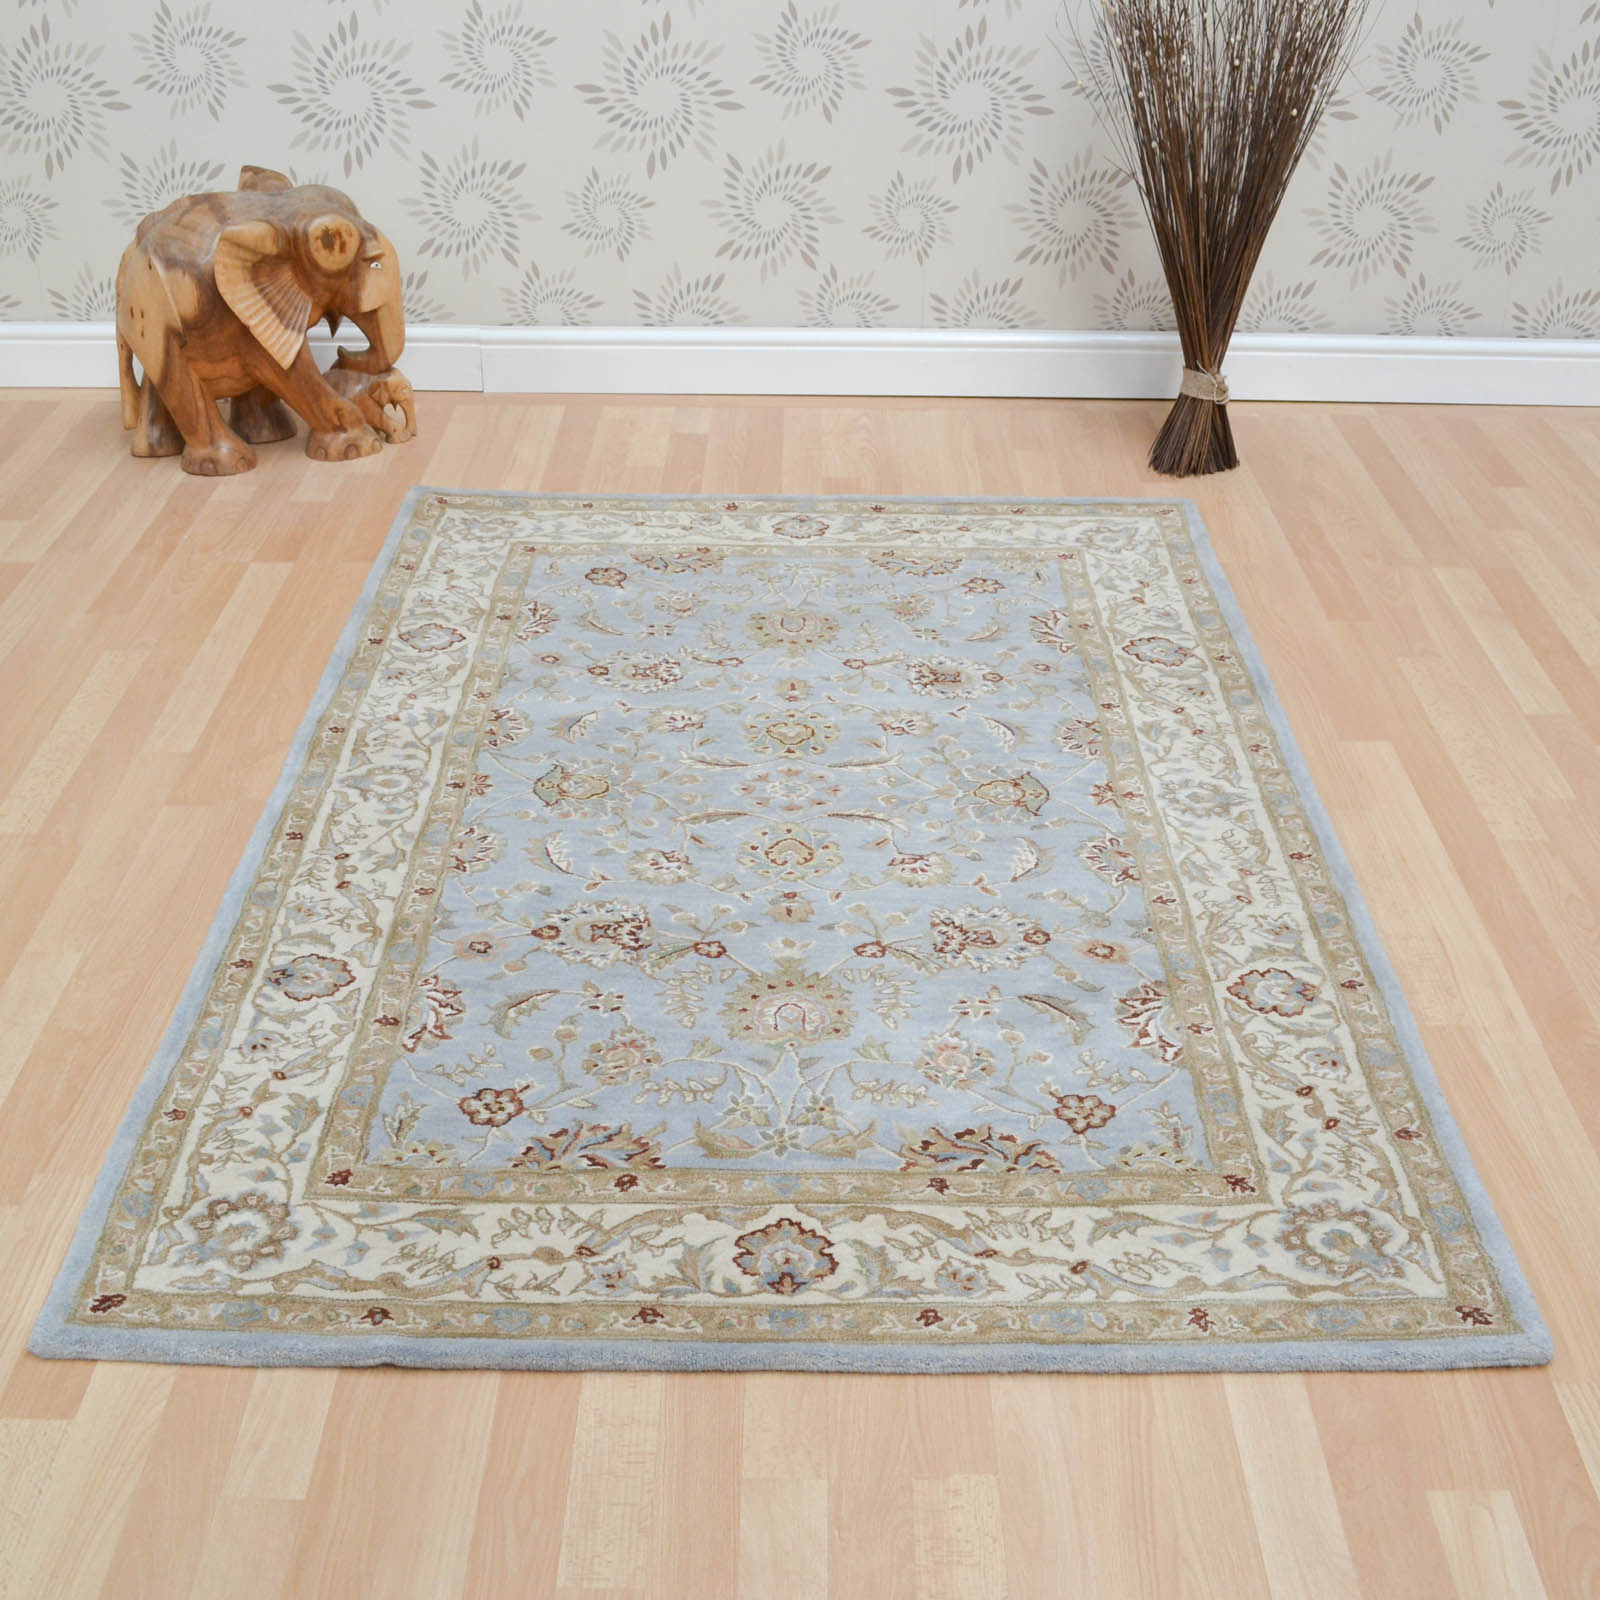 Buckingham Ziegler Rugs in Blue